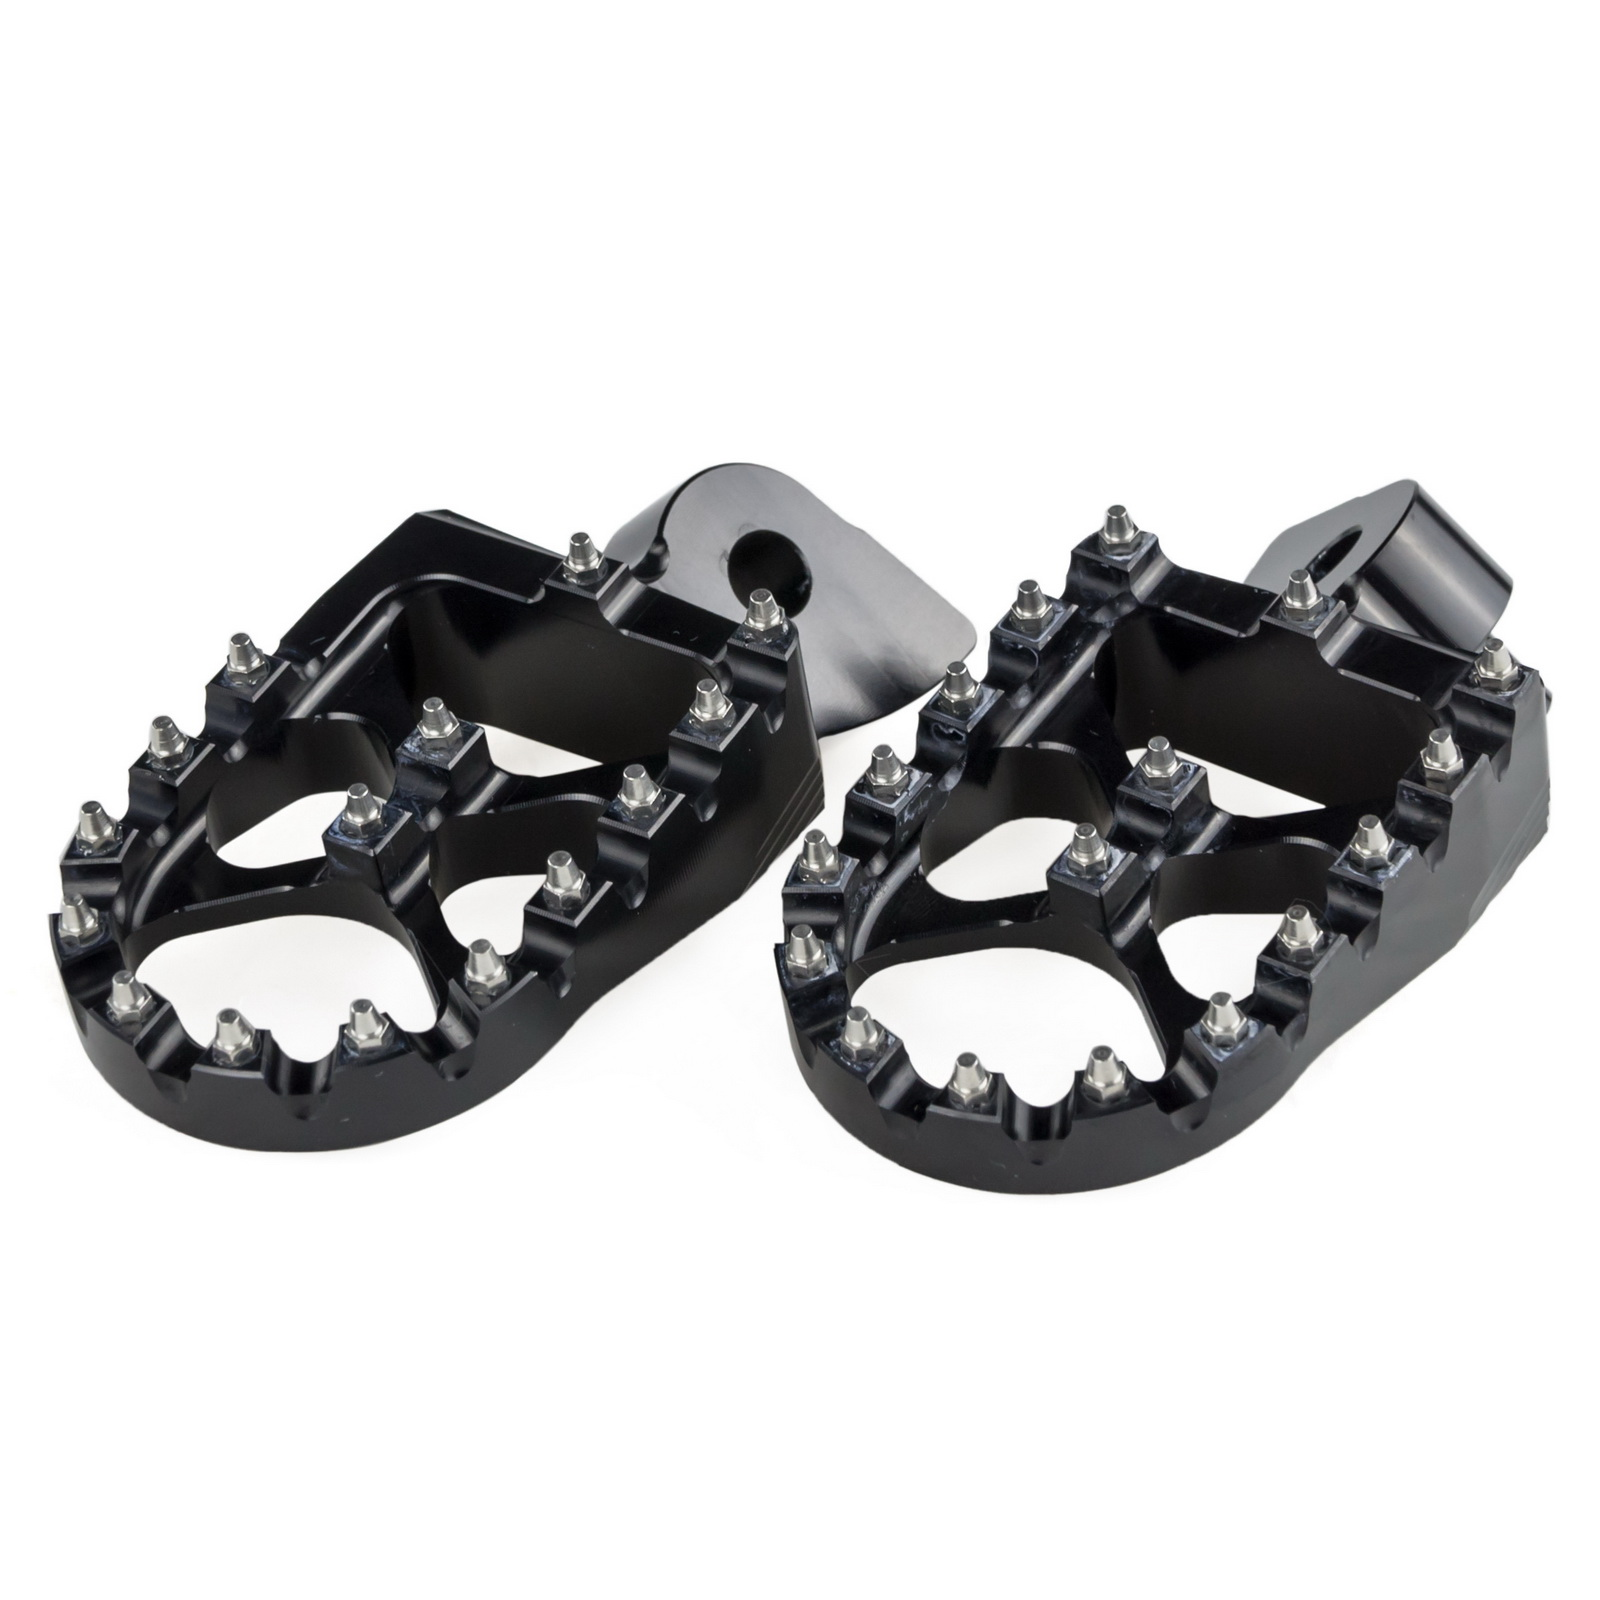 Motorcycle Footrests Foot Peg For Yamaha YZ 85 125 250 125X 250X 250FX 450FX YZ WR 250F 450F 97-2016 2017 2018 2019 YZ125 YZ250